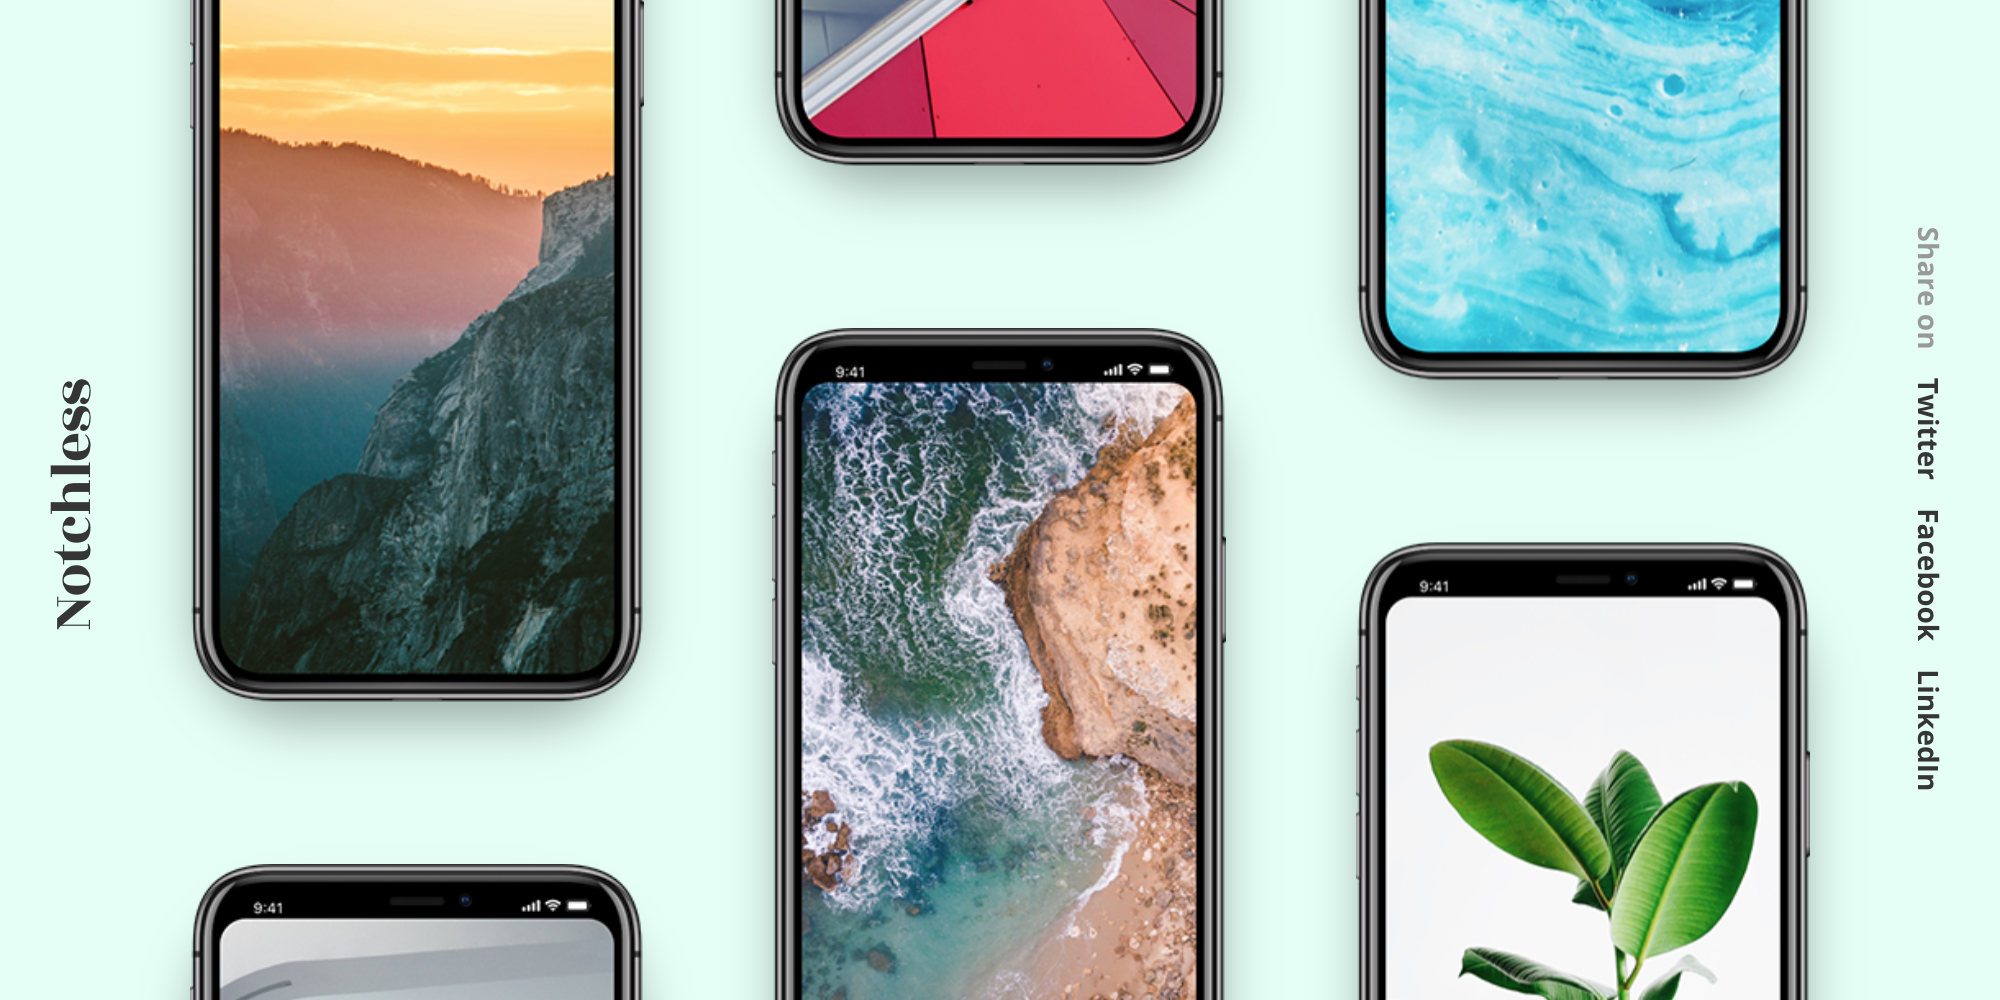 Notchless Beautiful wallpapers designed to hide the iPhone